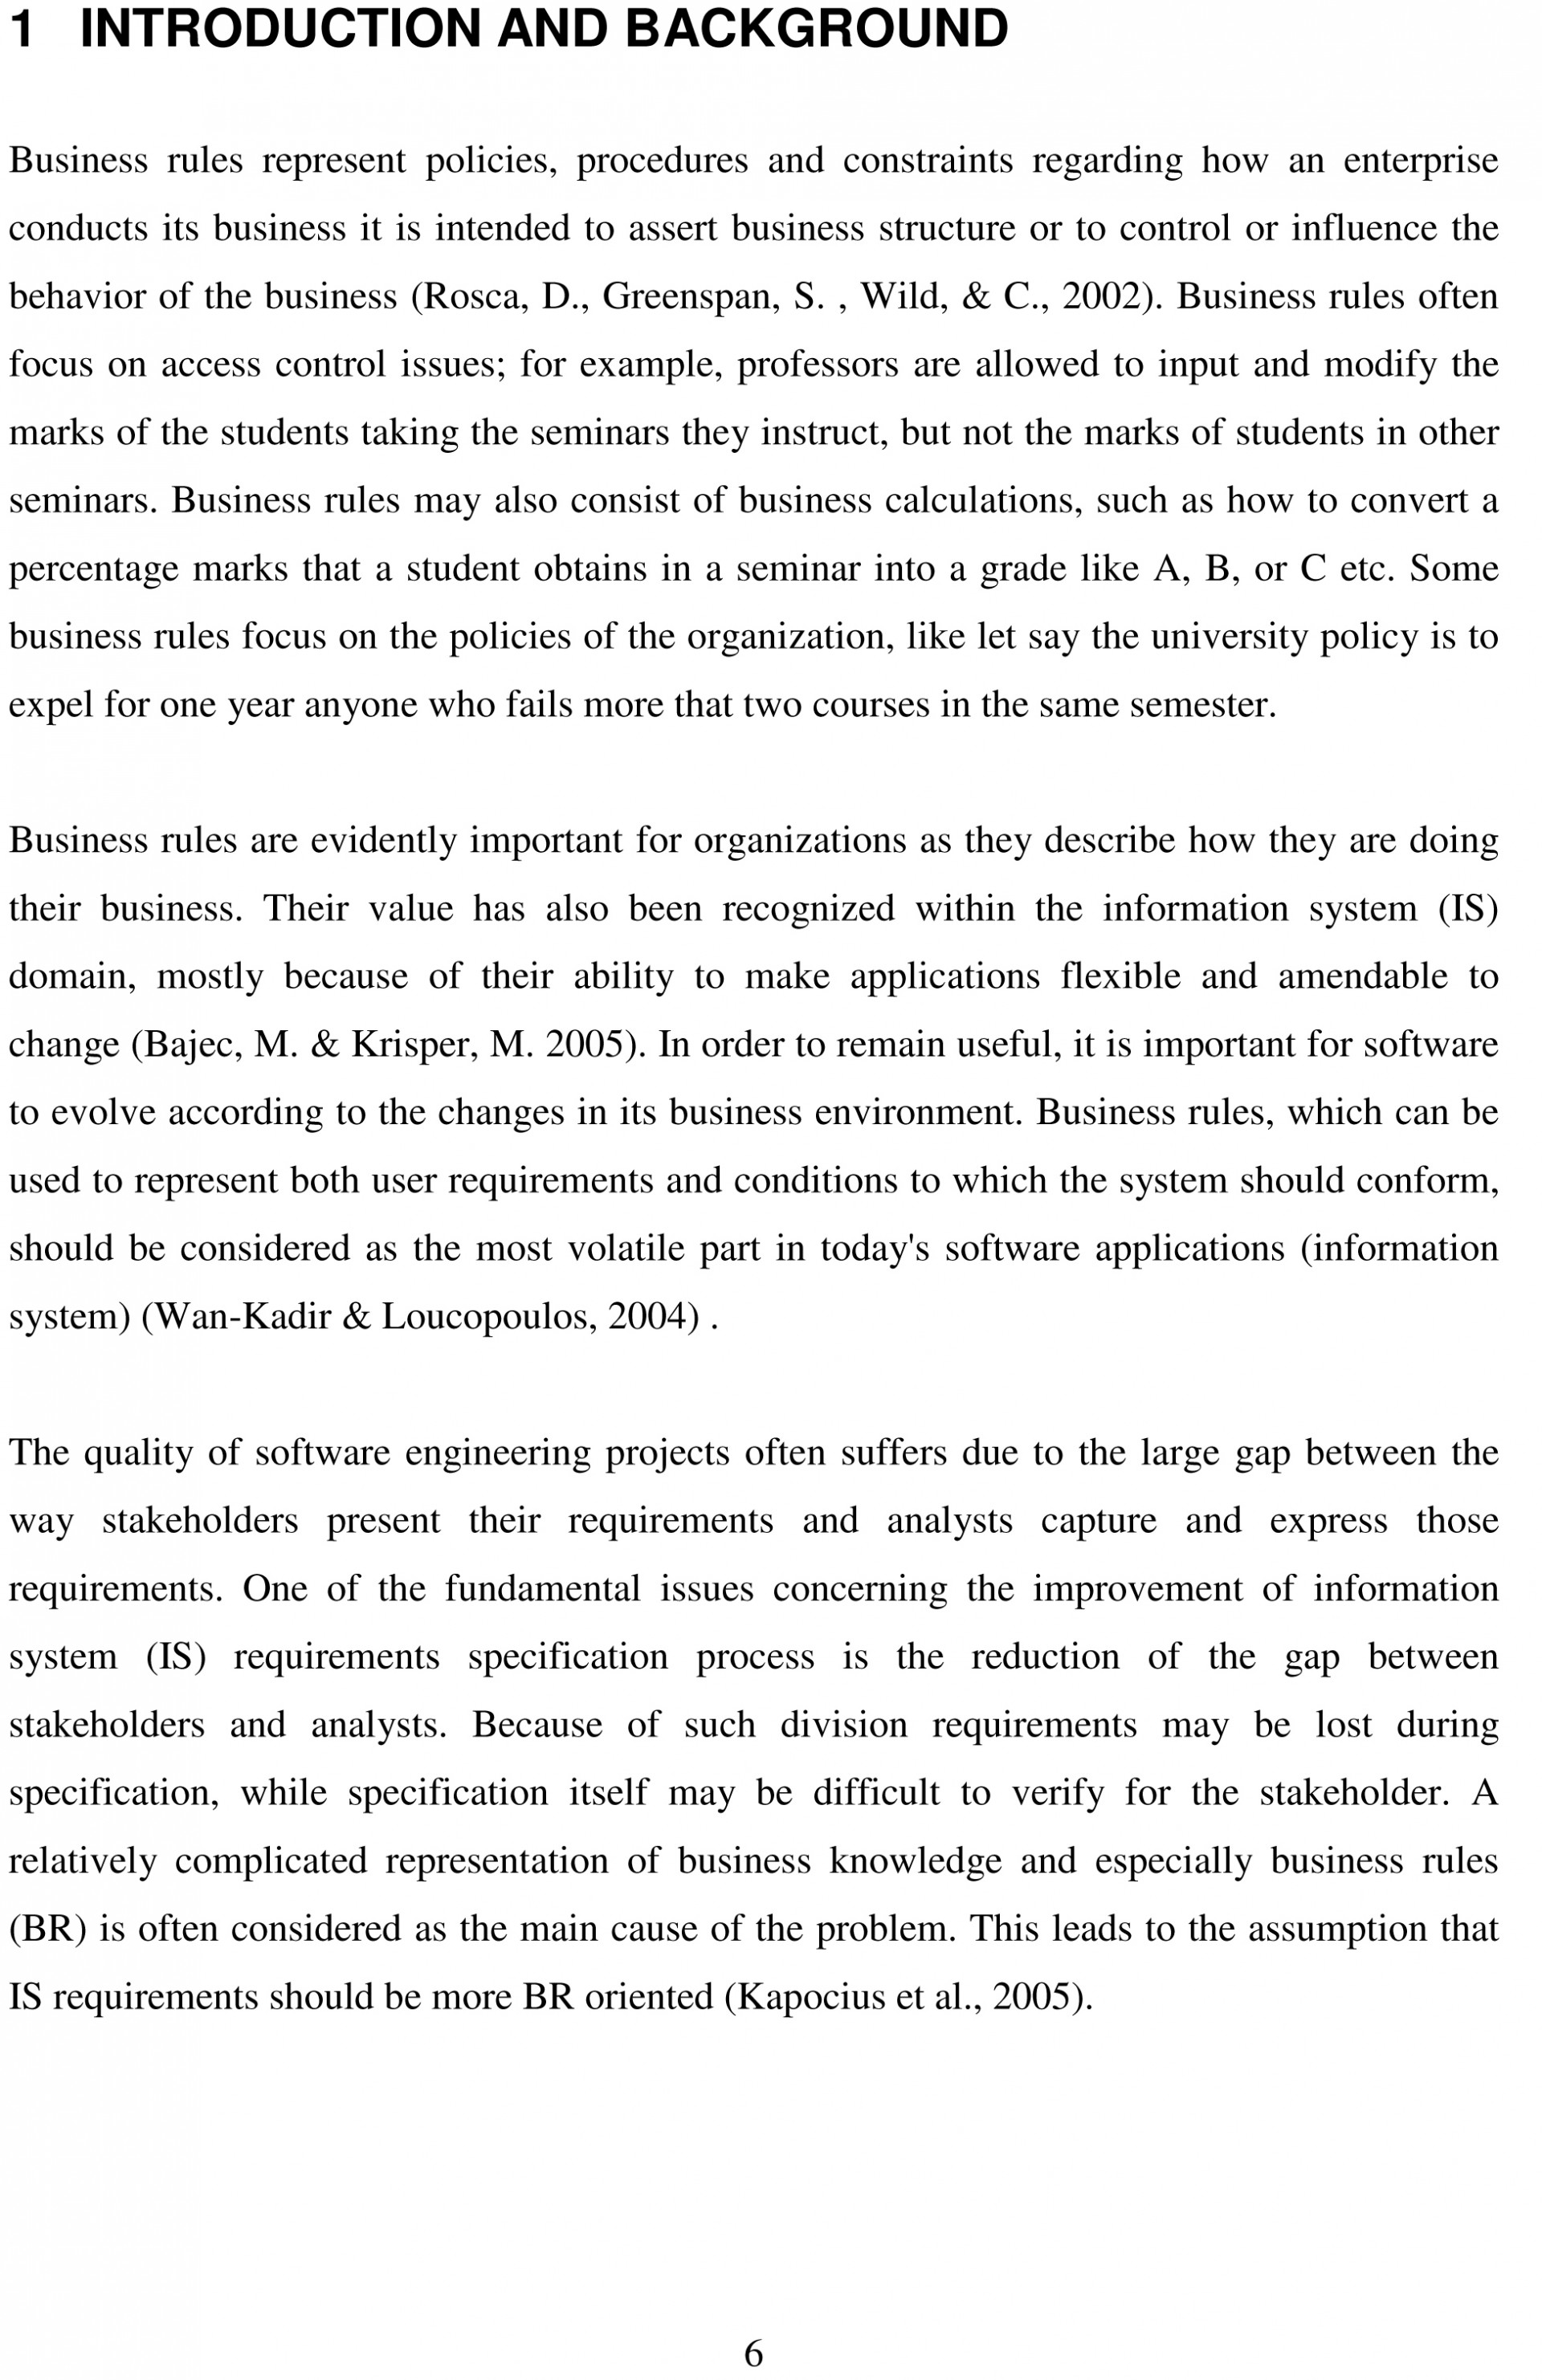 012 Opening Sentences For Essays Thesis Free Sample1 Essay Unique Good Closing Examples Great Introductory Ielts 1920